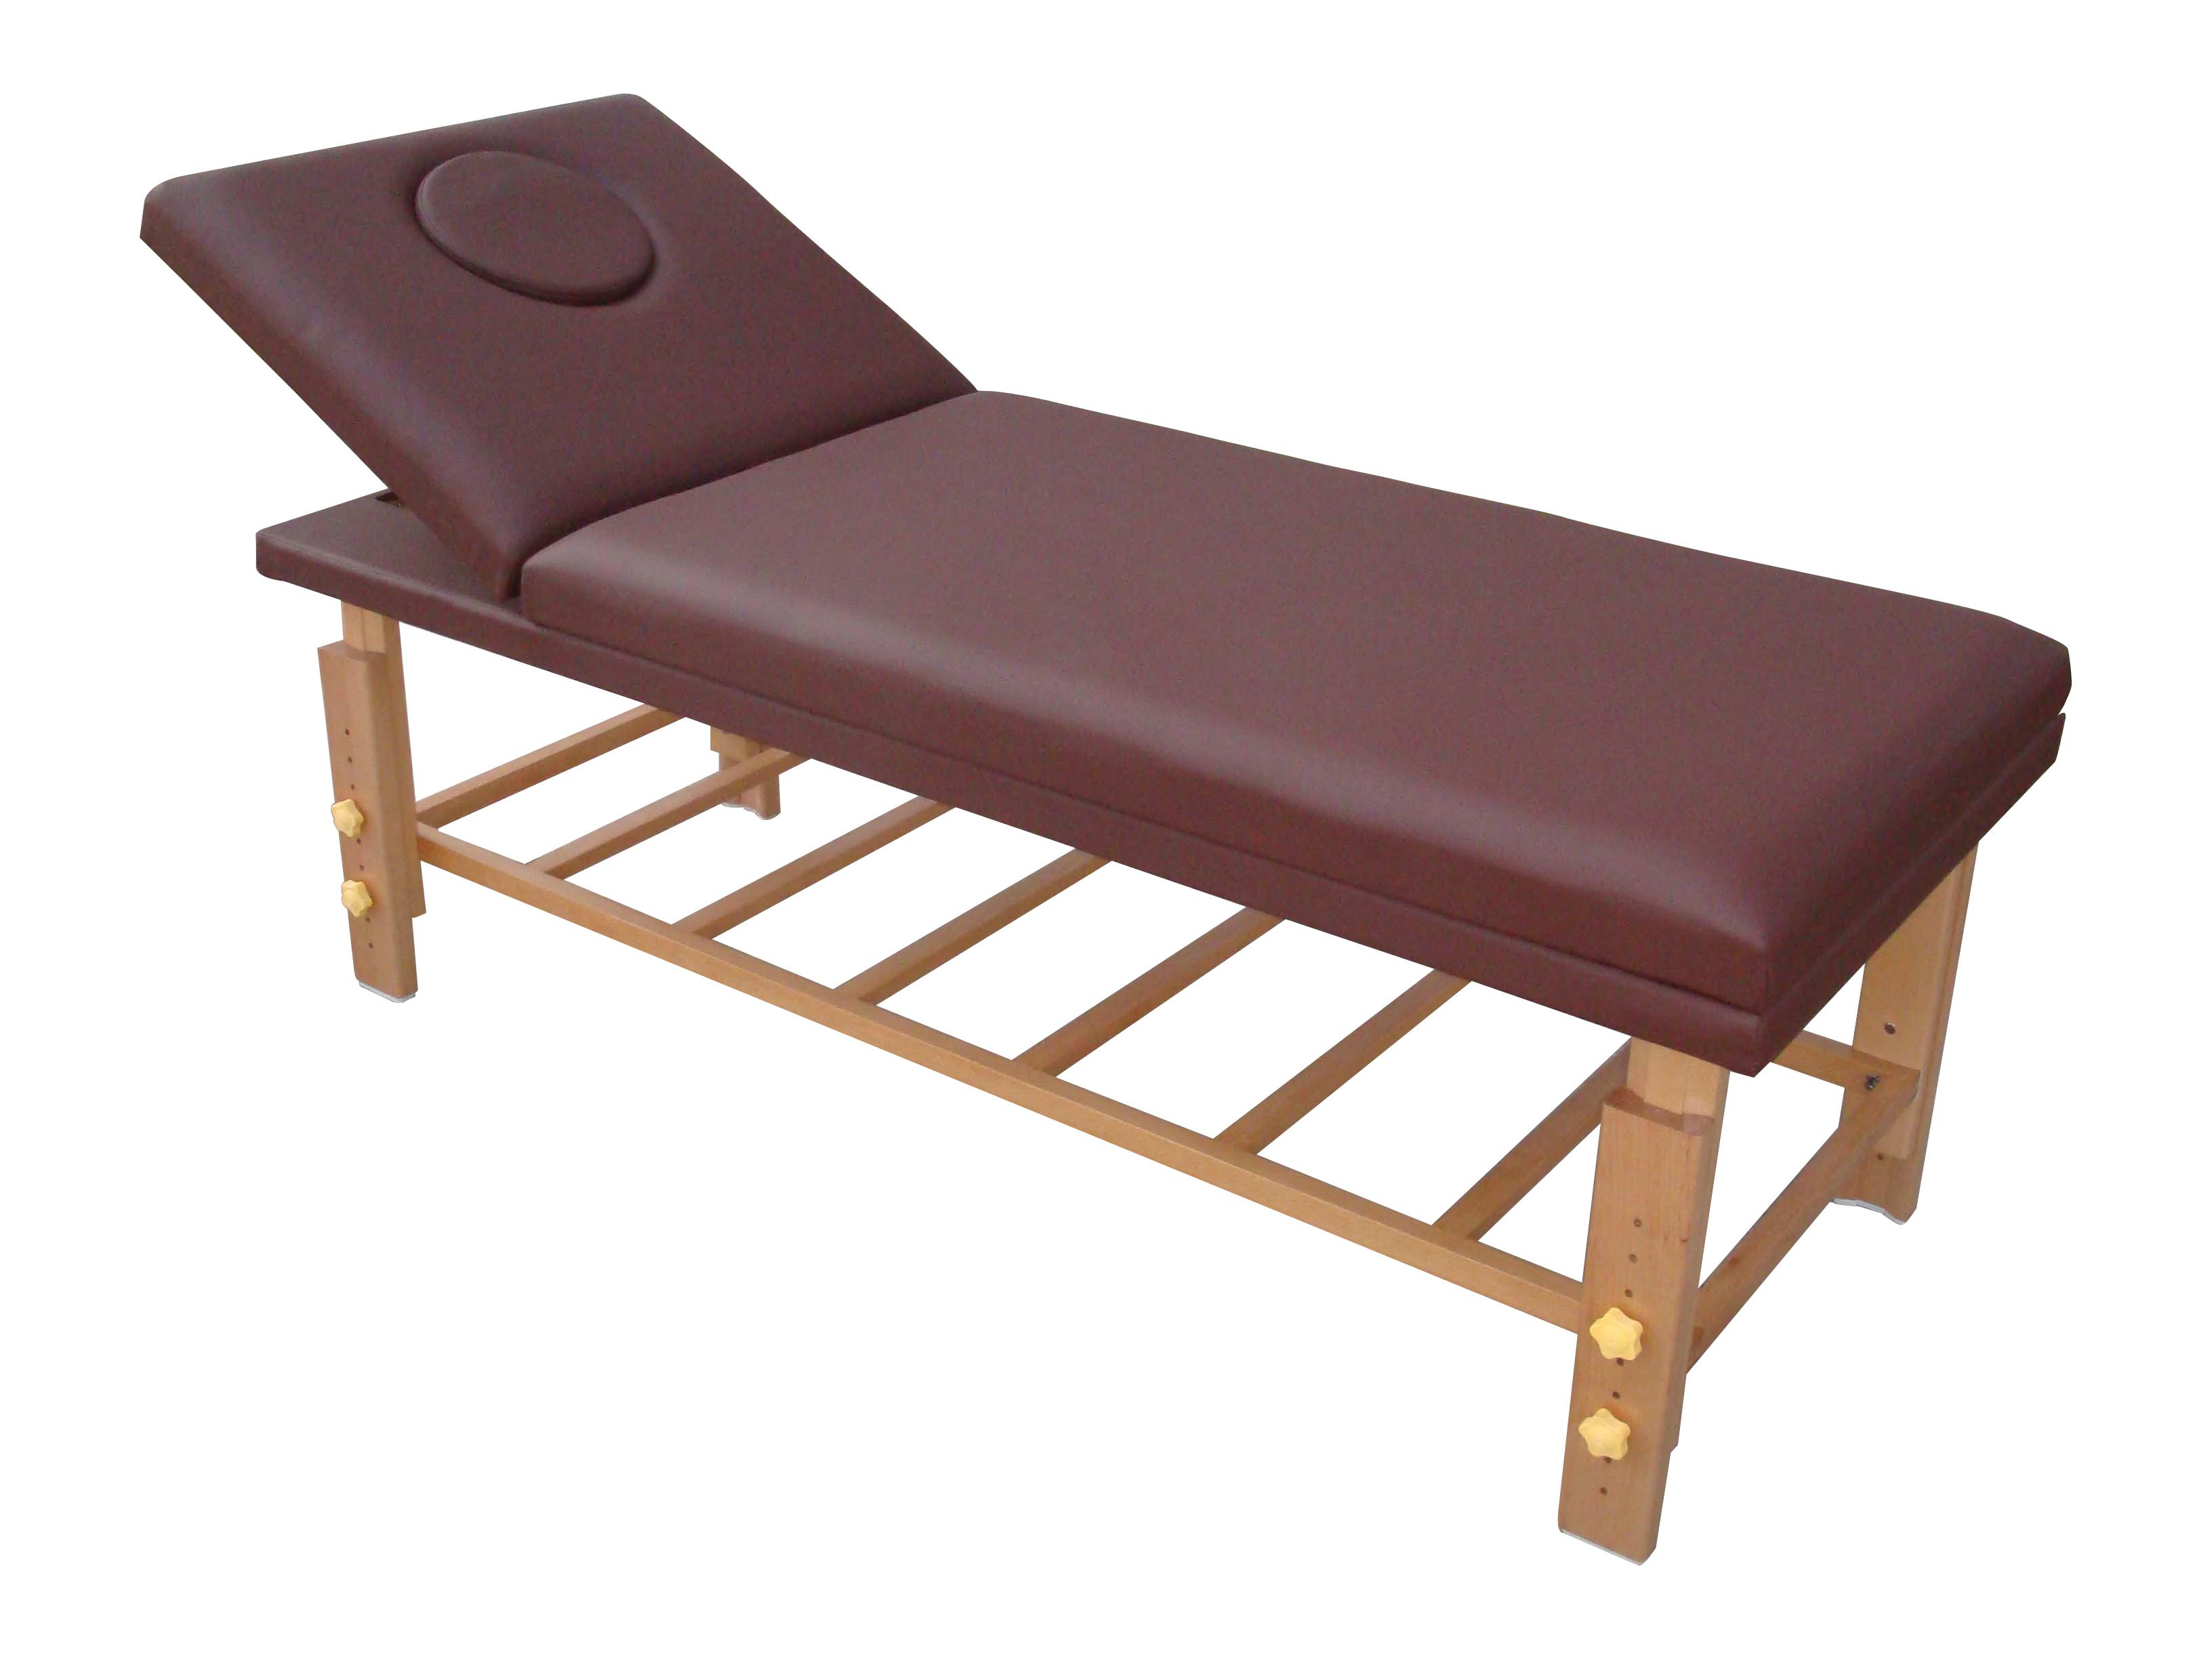 detail product massage sale table ease sex care for health real